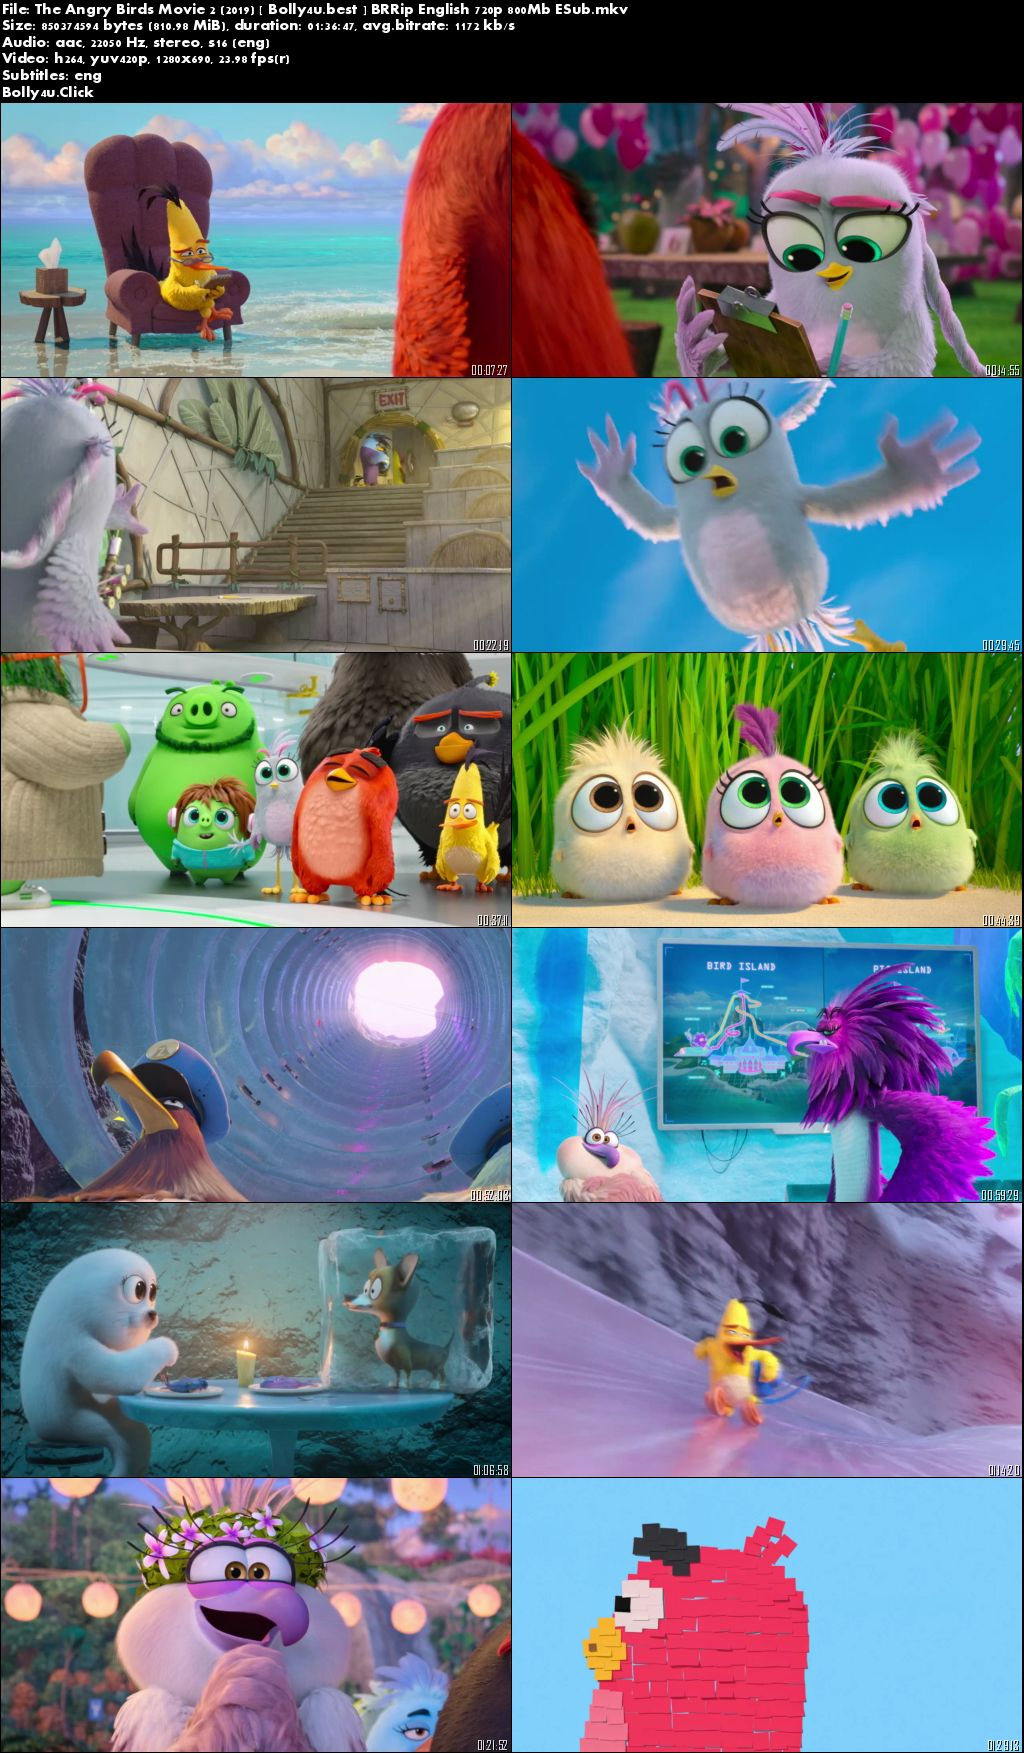 The Angry Birds Movie 2 2019 BRRip 800Mb English 720p ESub Download